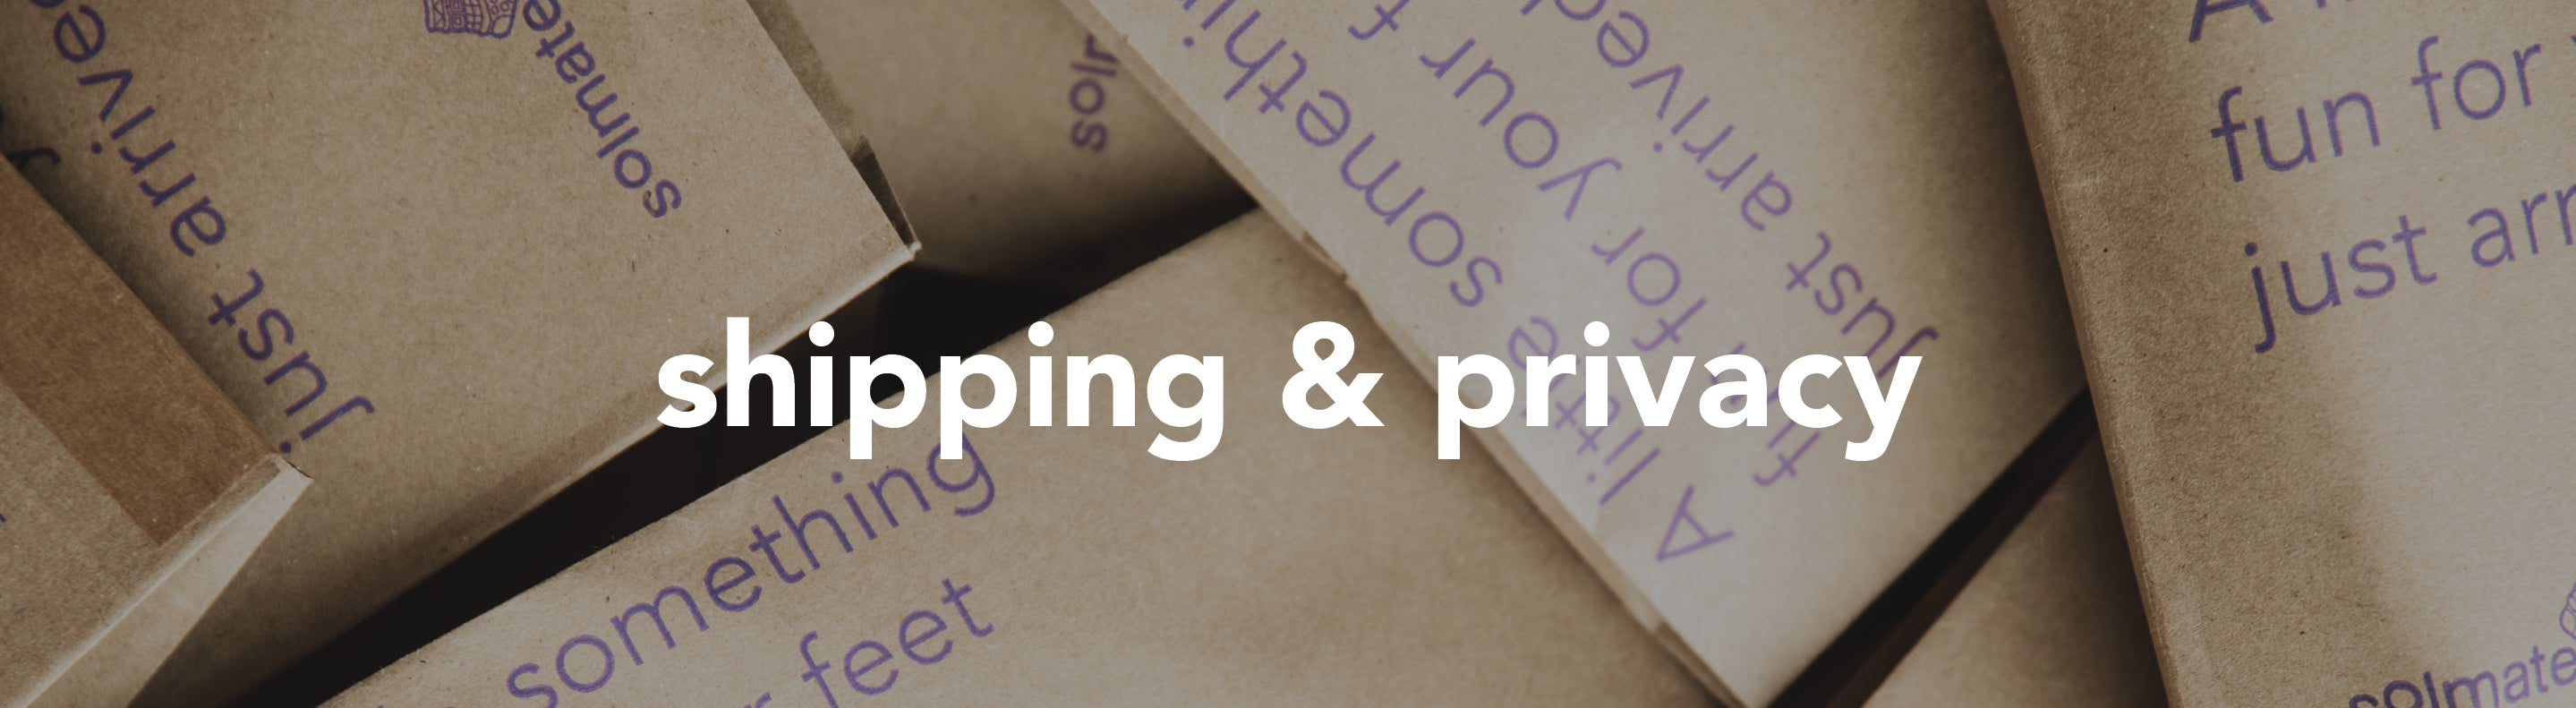 Shipping & Privacy